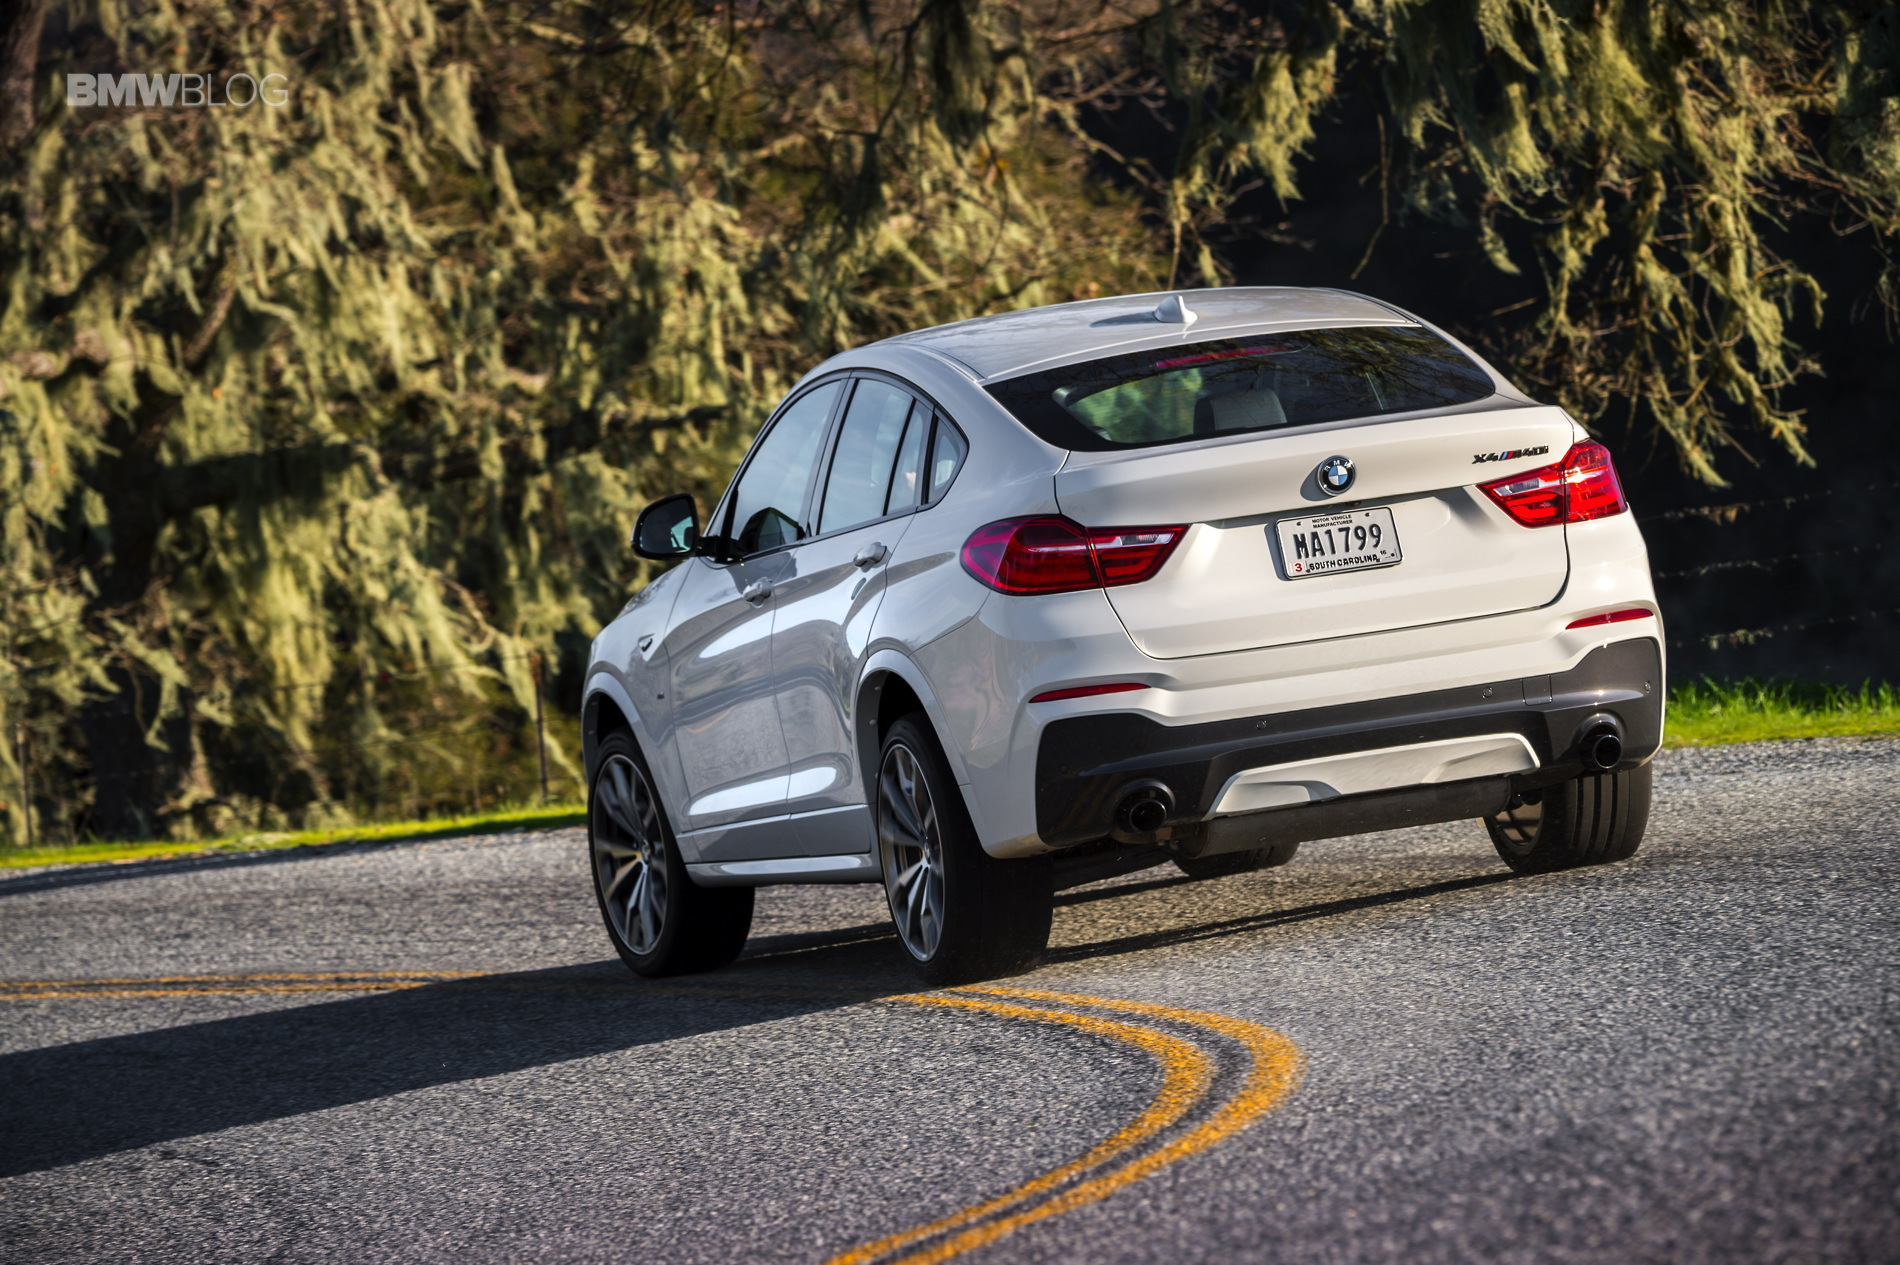 2016 BMW X4 M40i test drive review 56